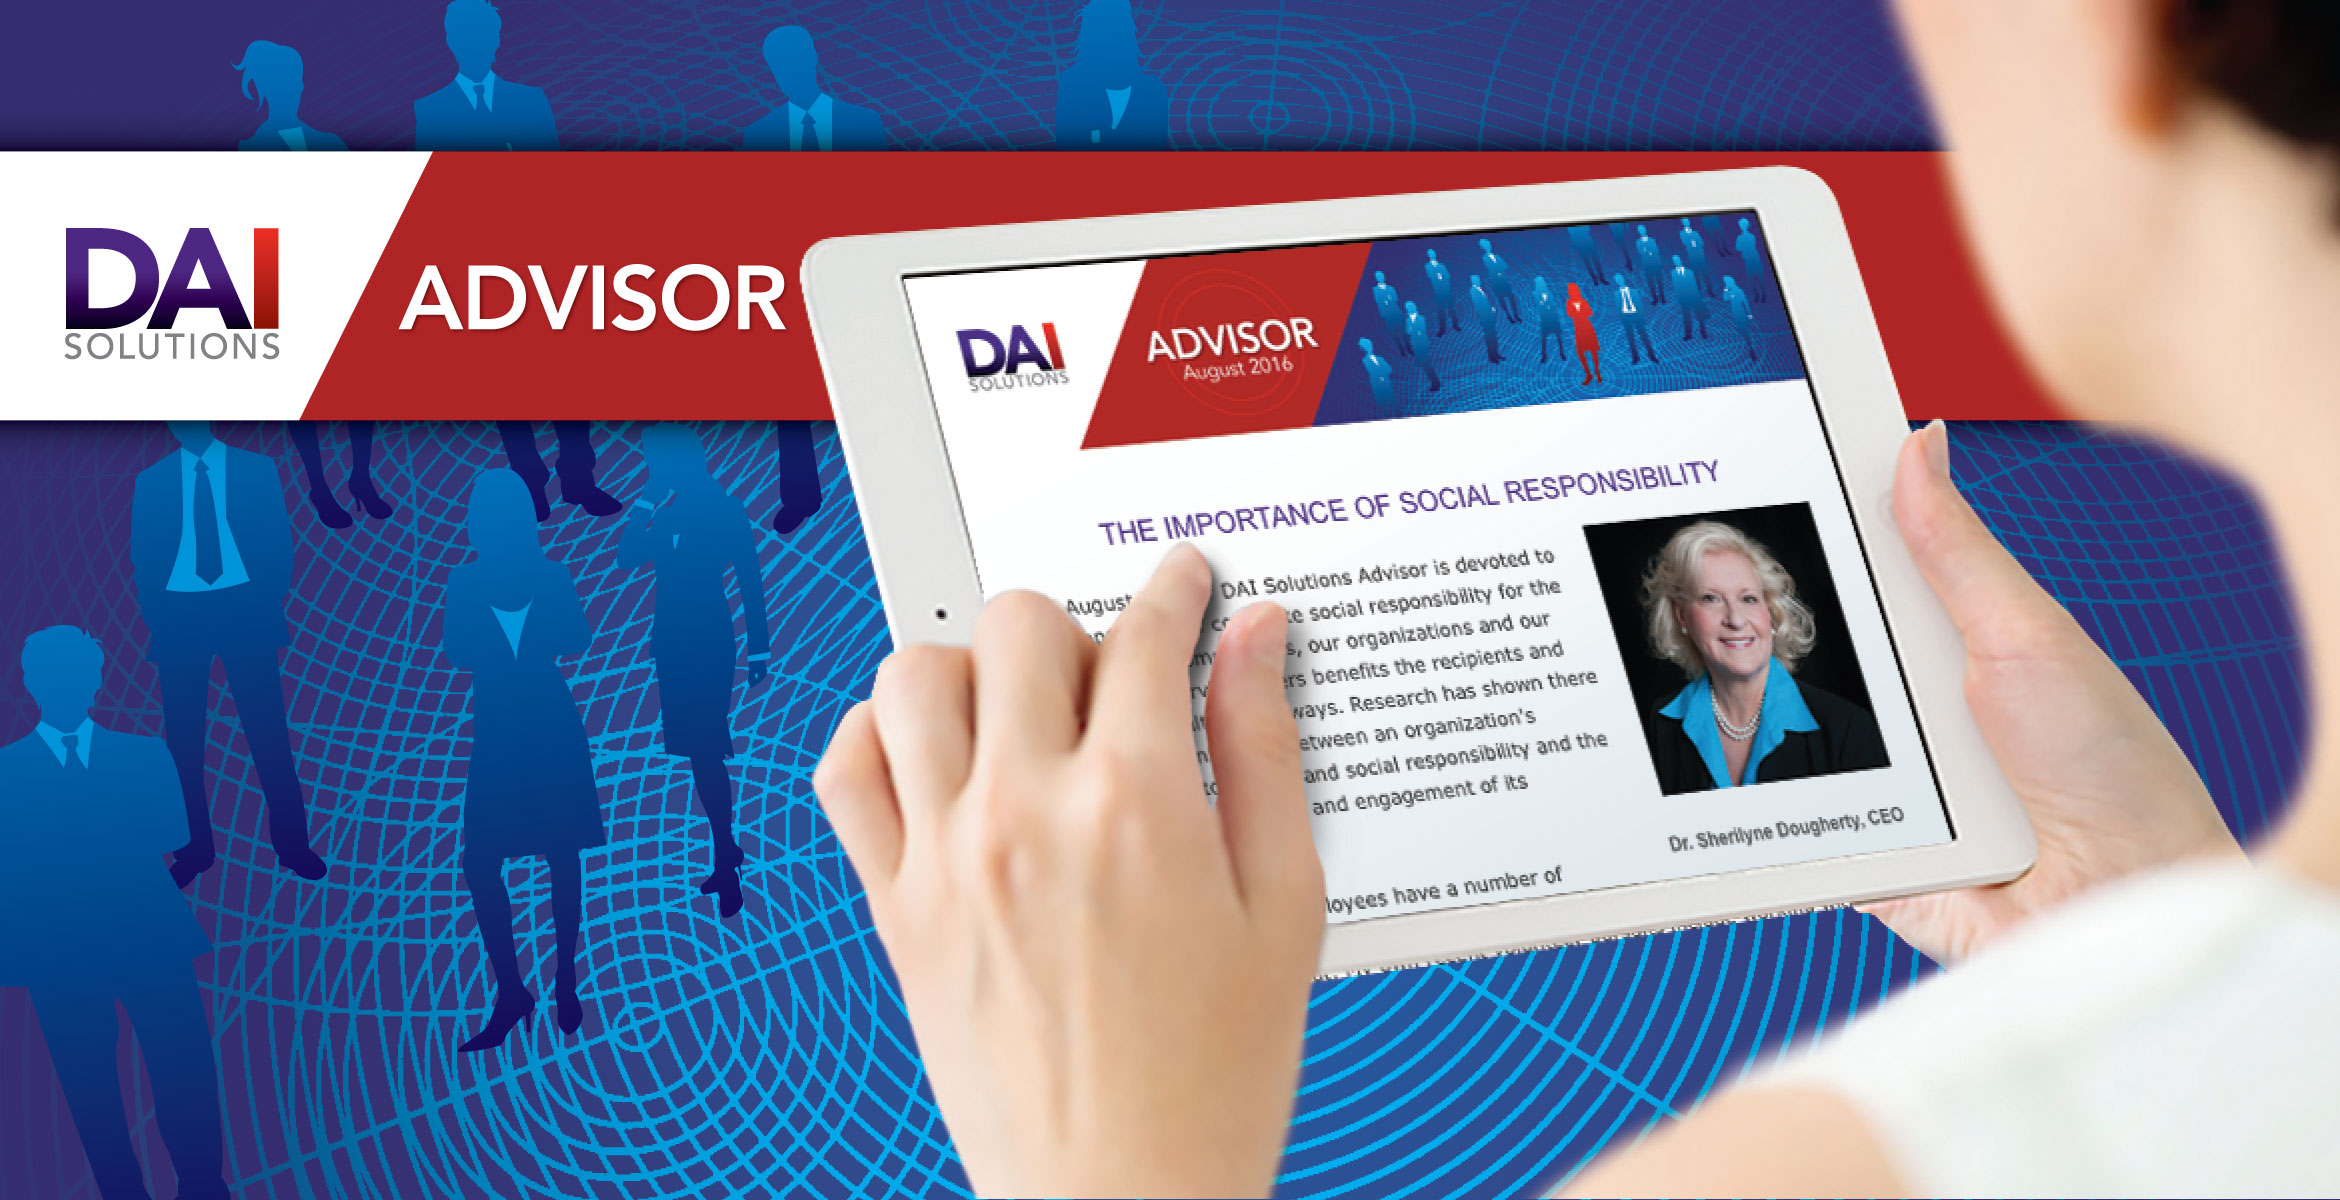 DAI Advisor header plus picture of the newsletter on a tablet computer